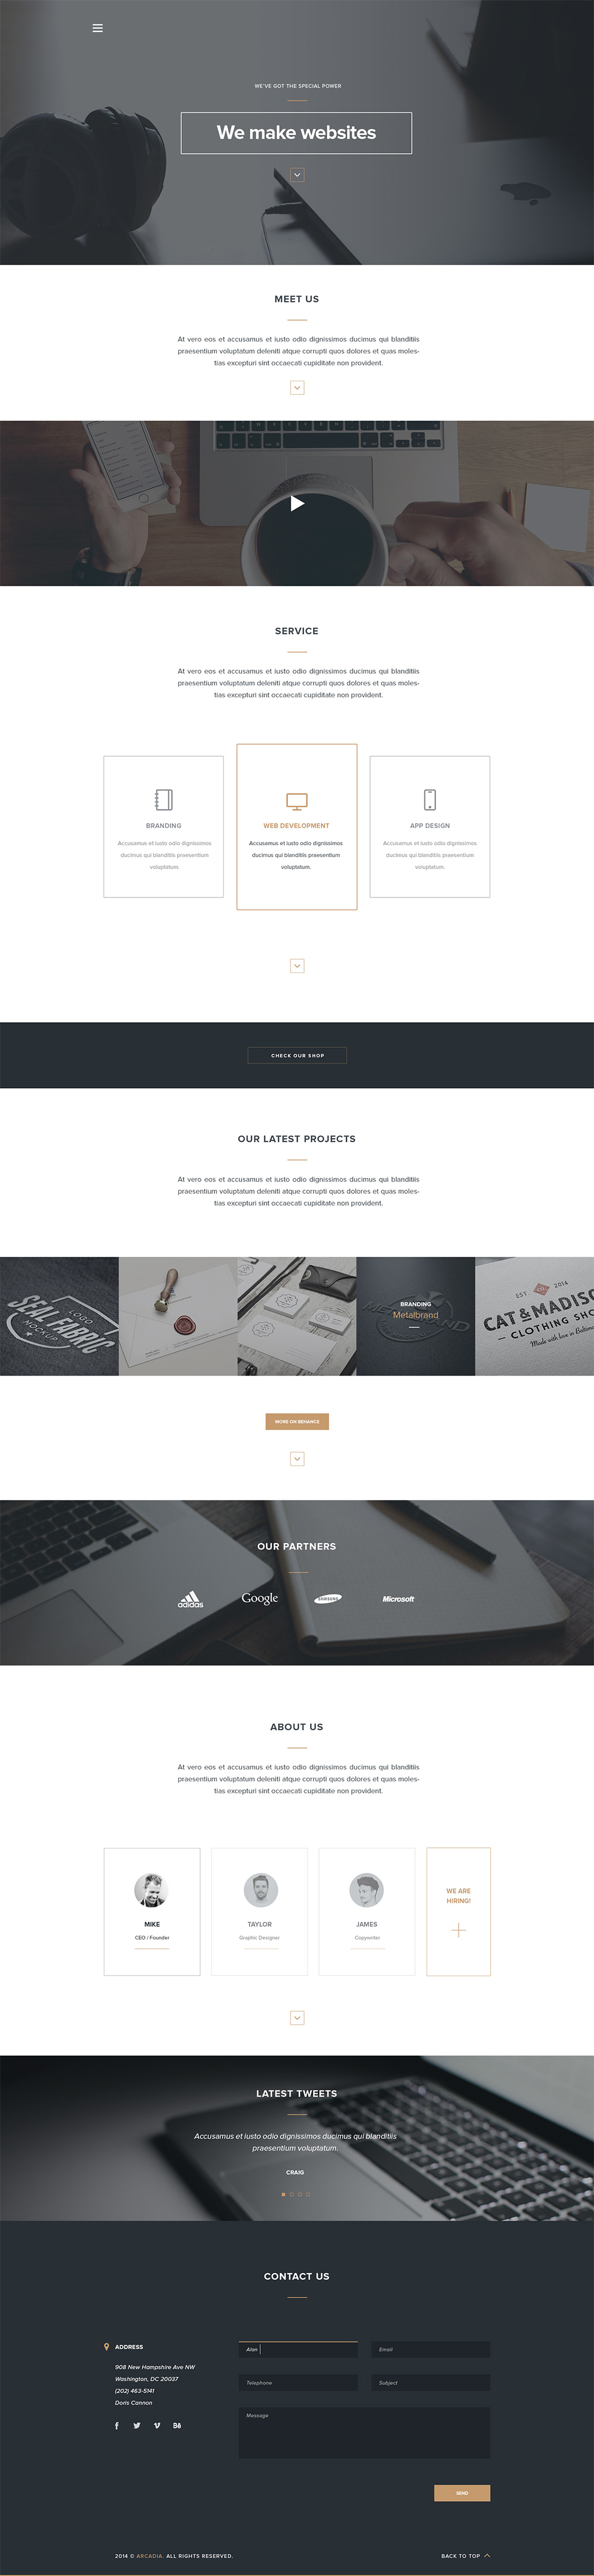 Arcadia: Free HTML Web Template - GraphicsFuel